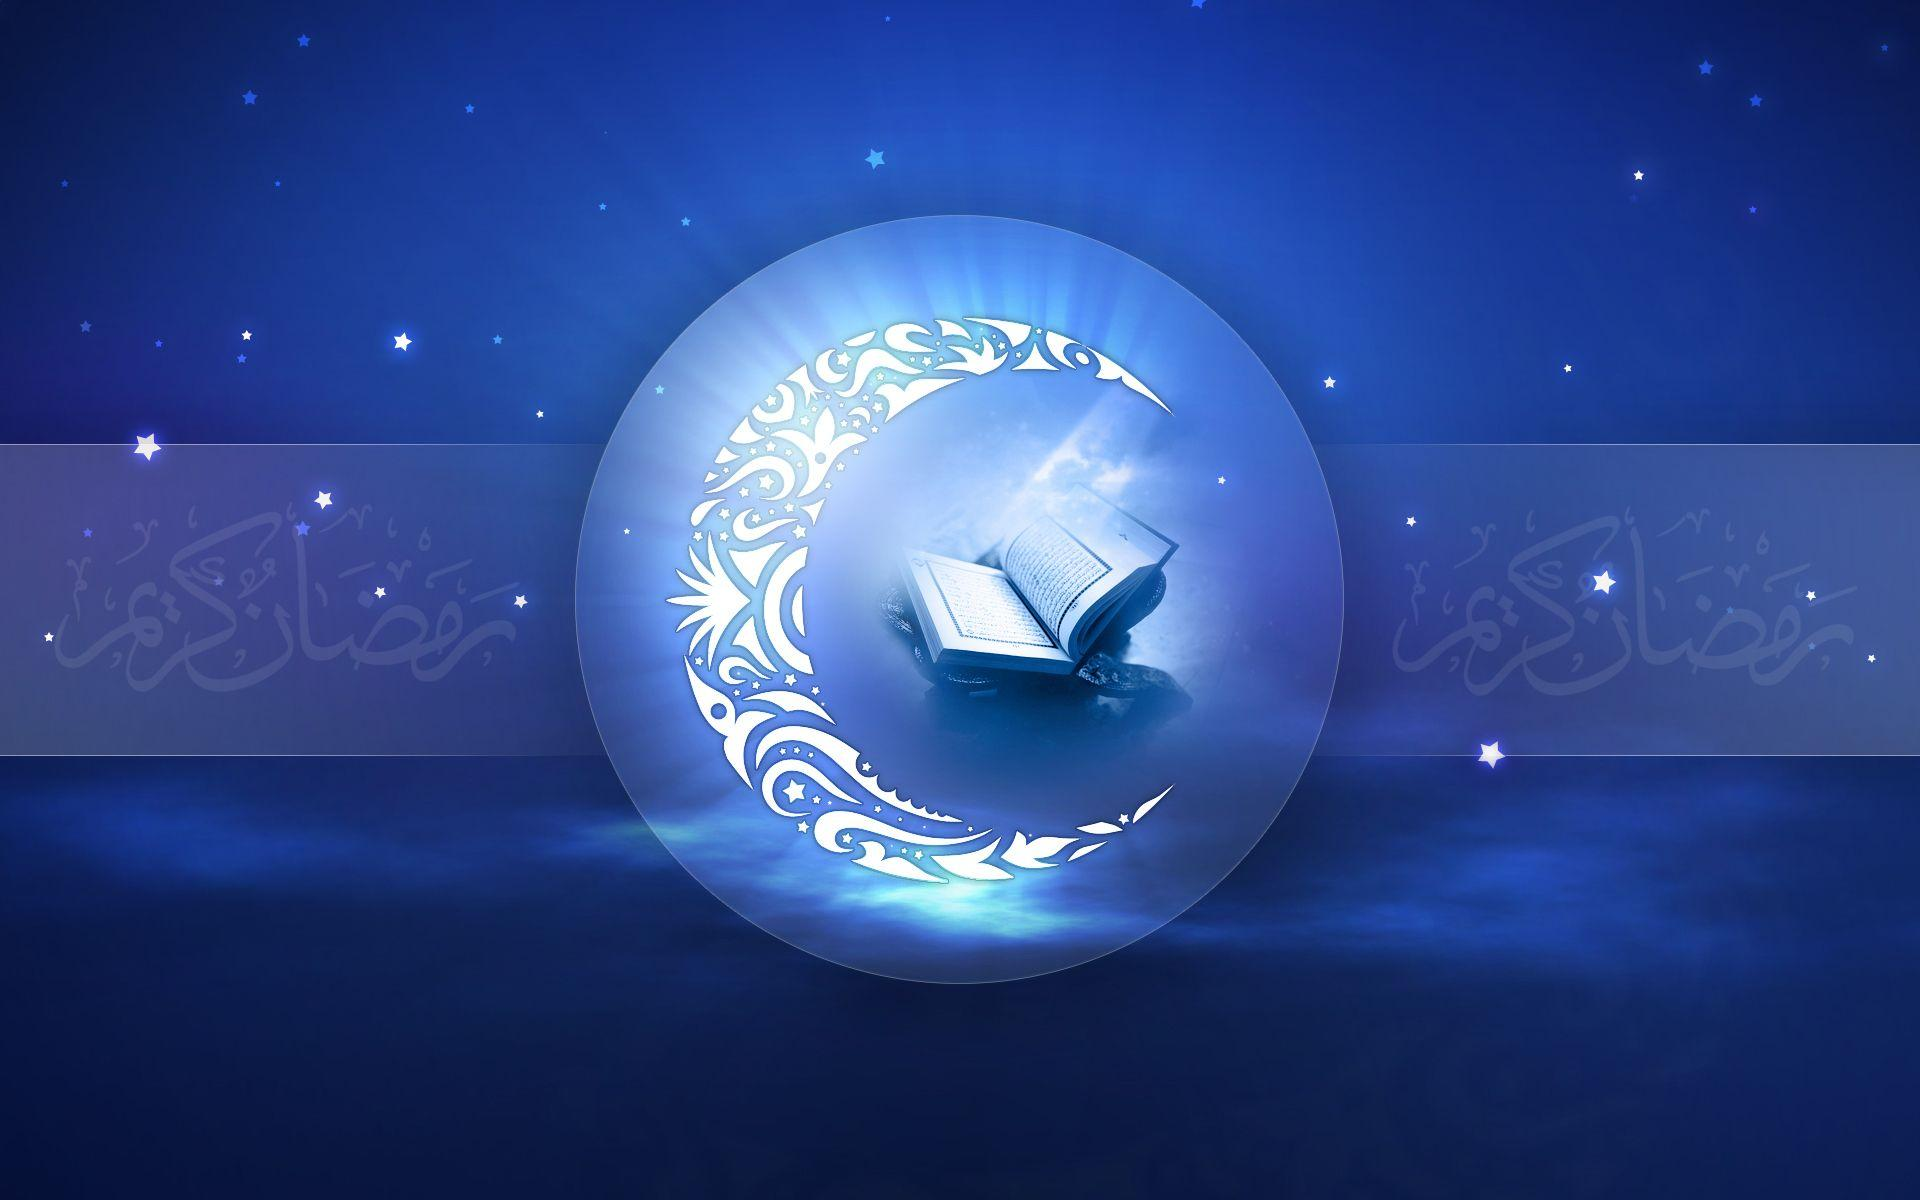 Lovely Ramadan wallpapers and images - wallpapers, pictures, photos